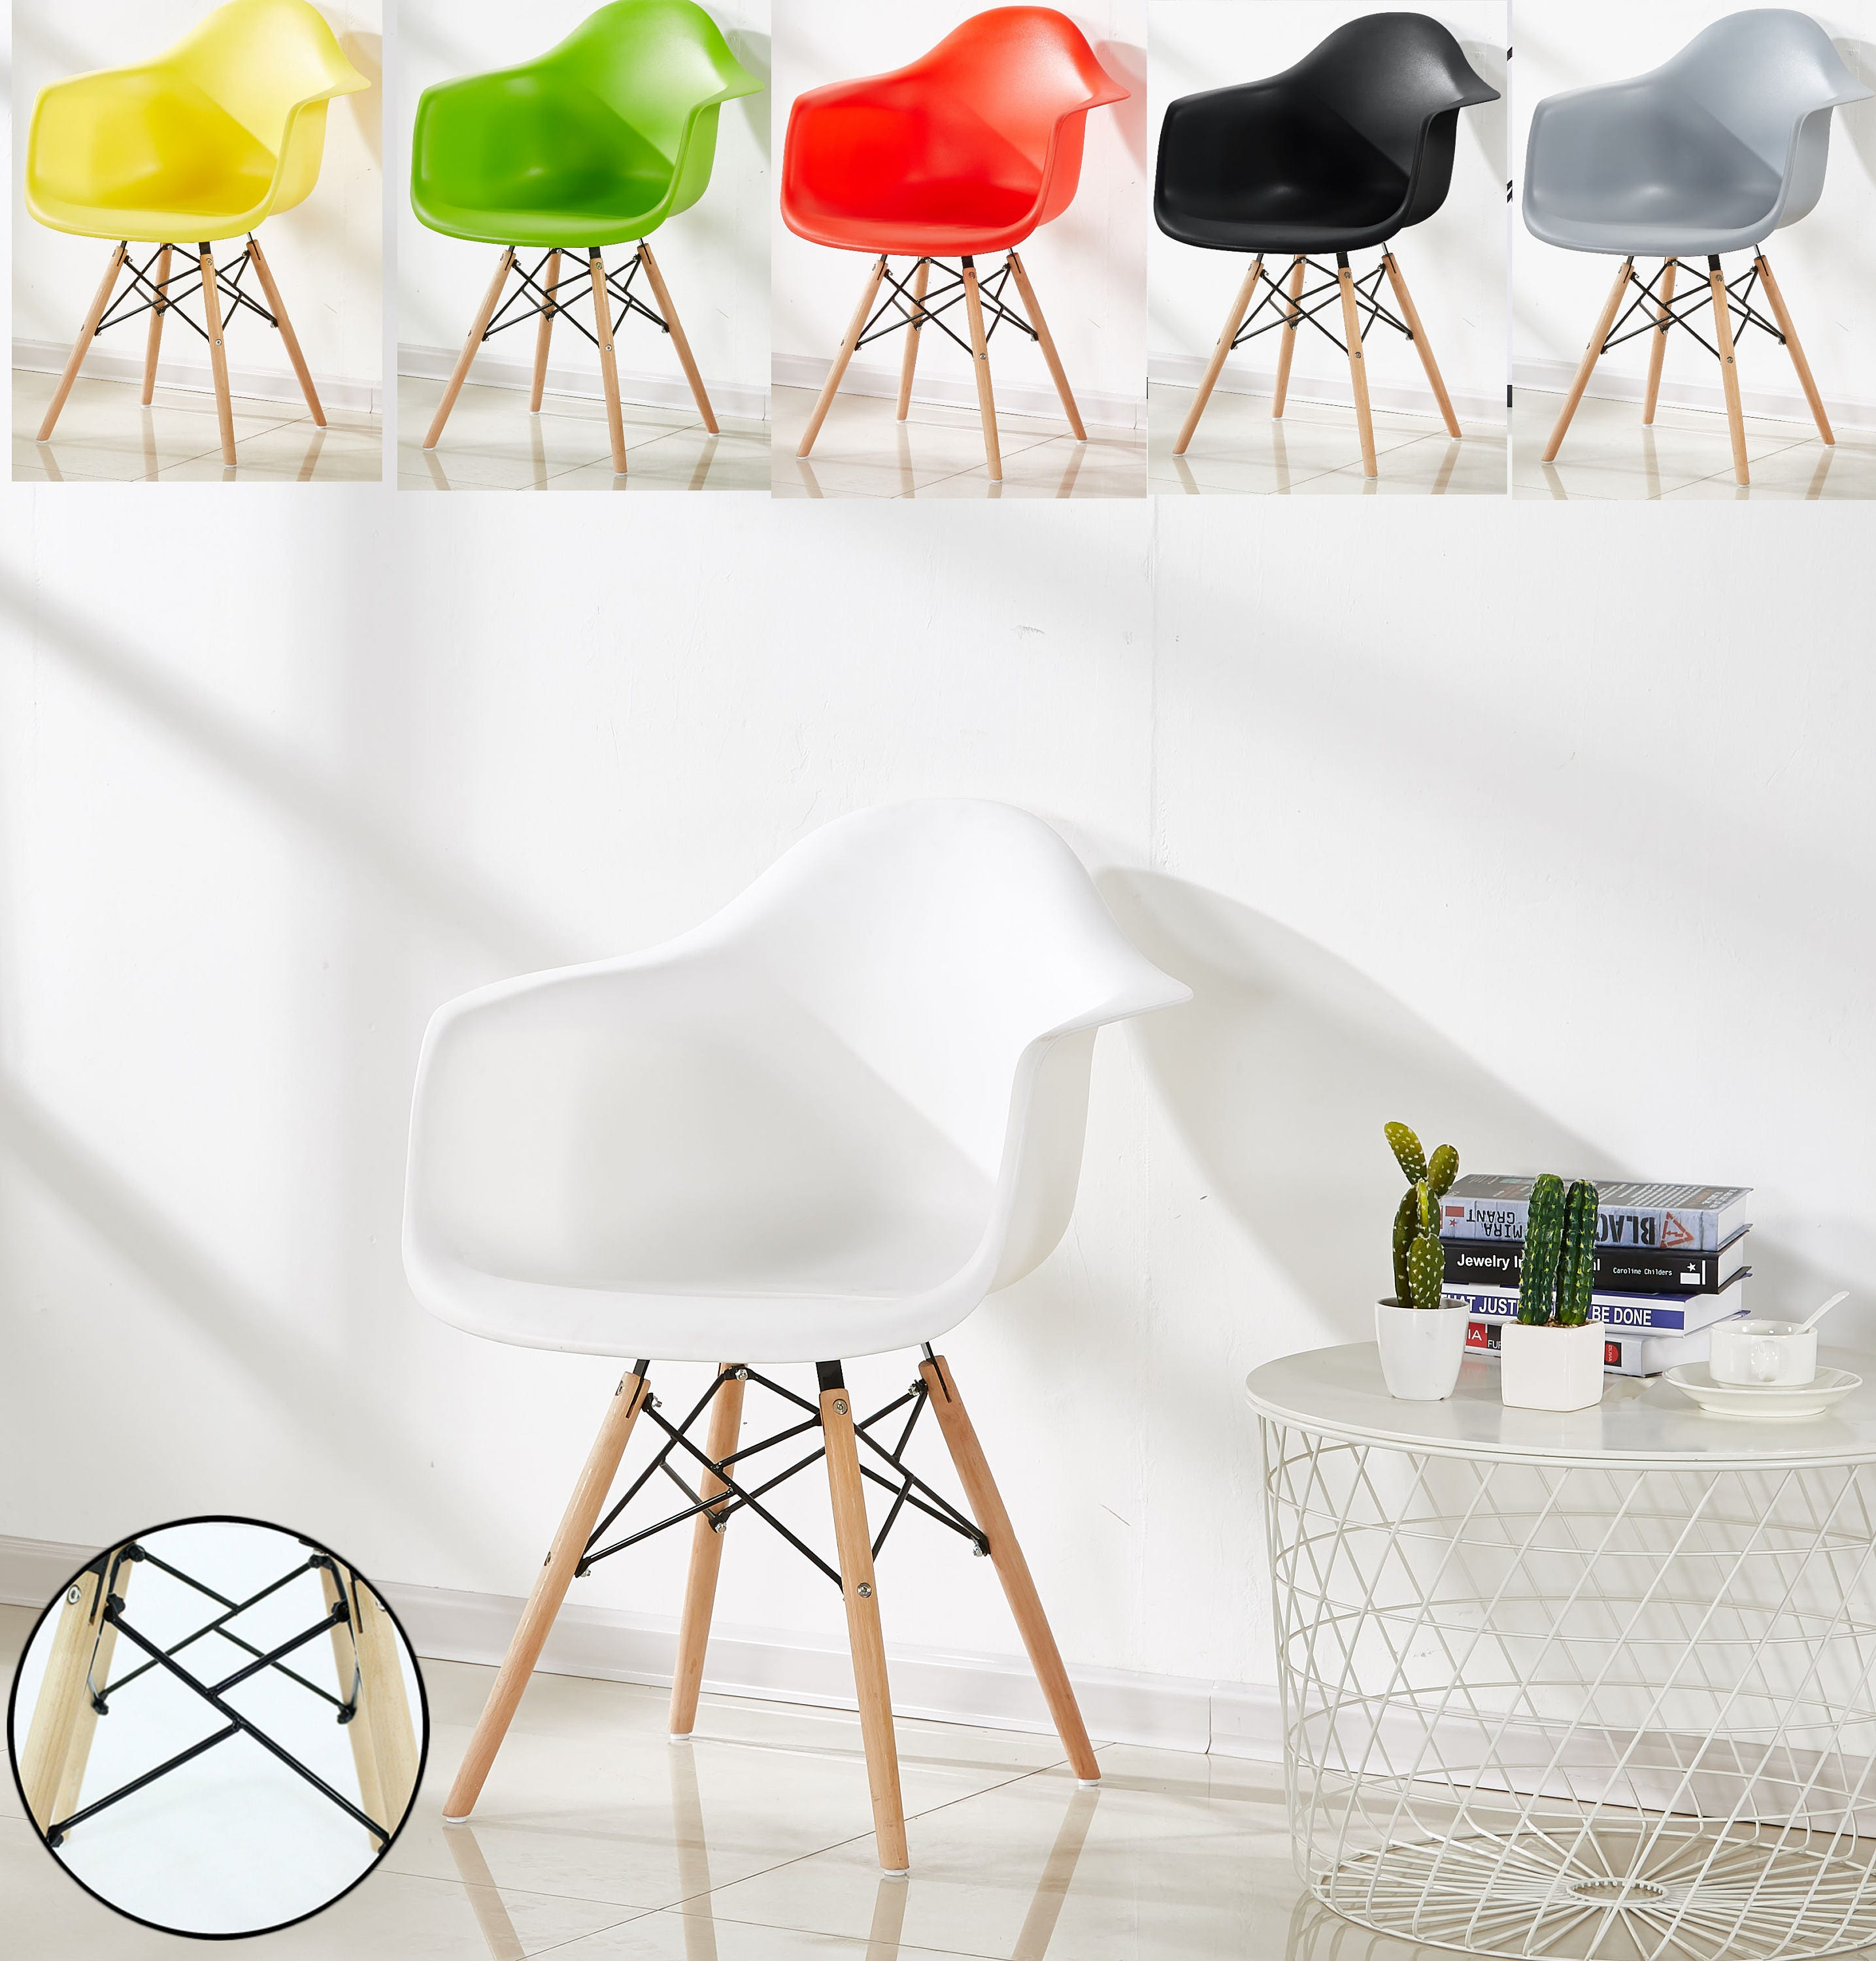 Designer DWS DAW Style Chair design  chaise DAW design scandinave Dining Chair or Office Chair